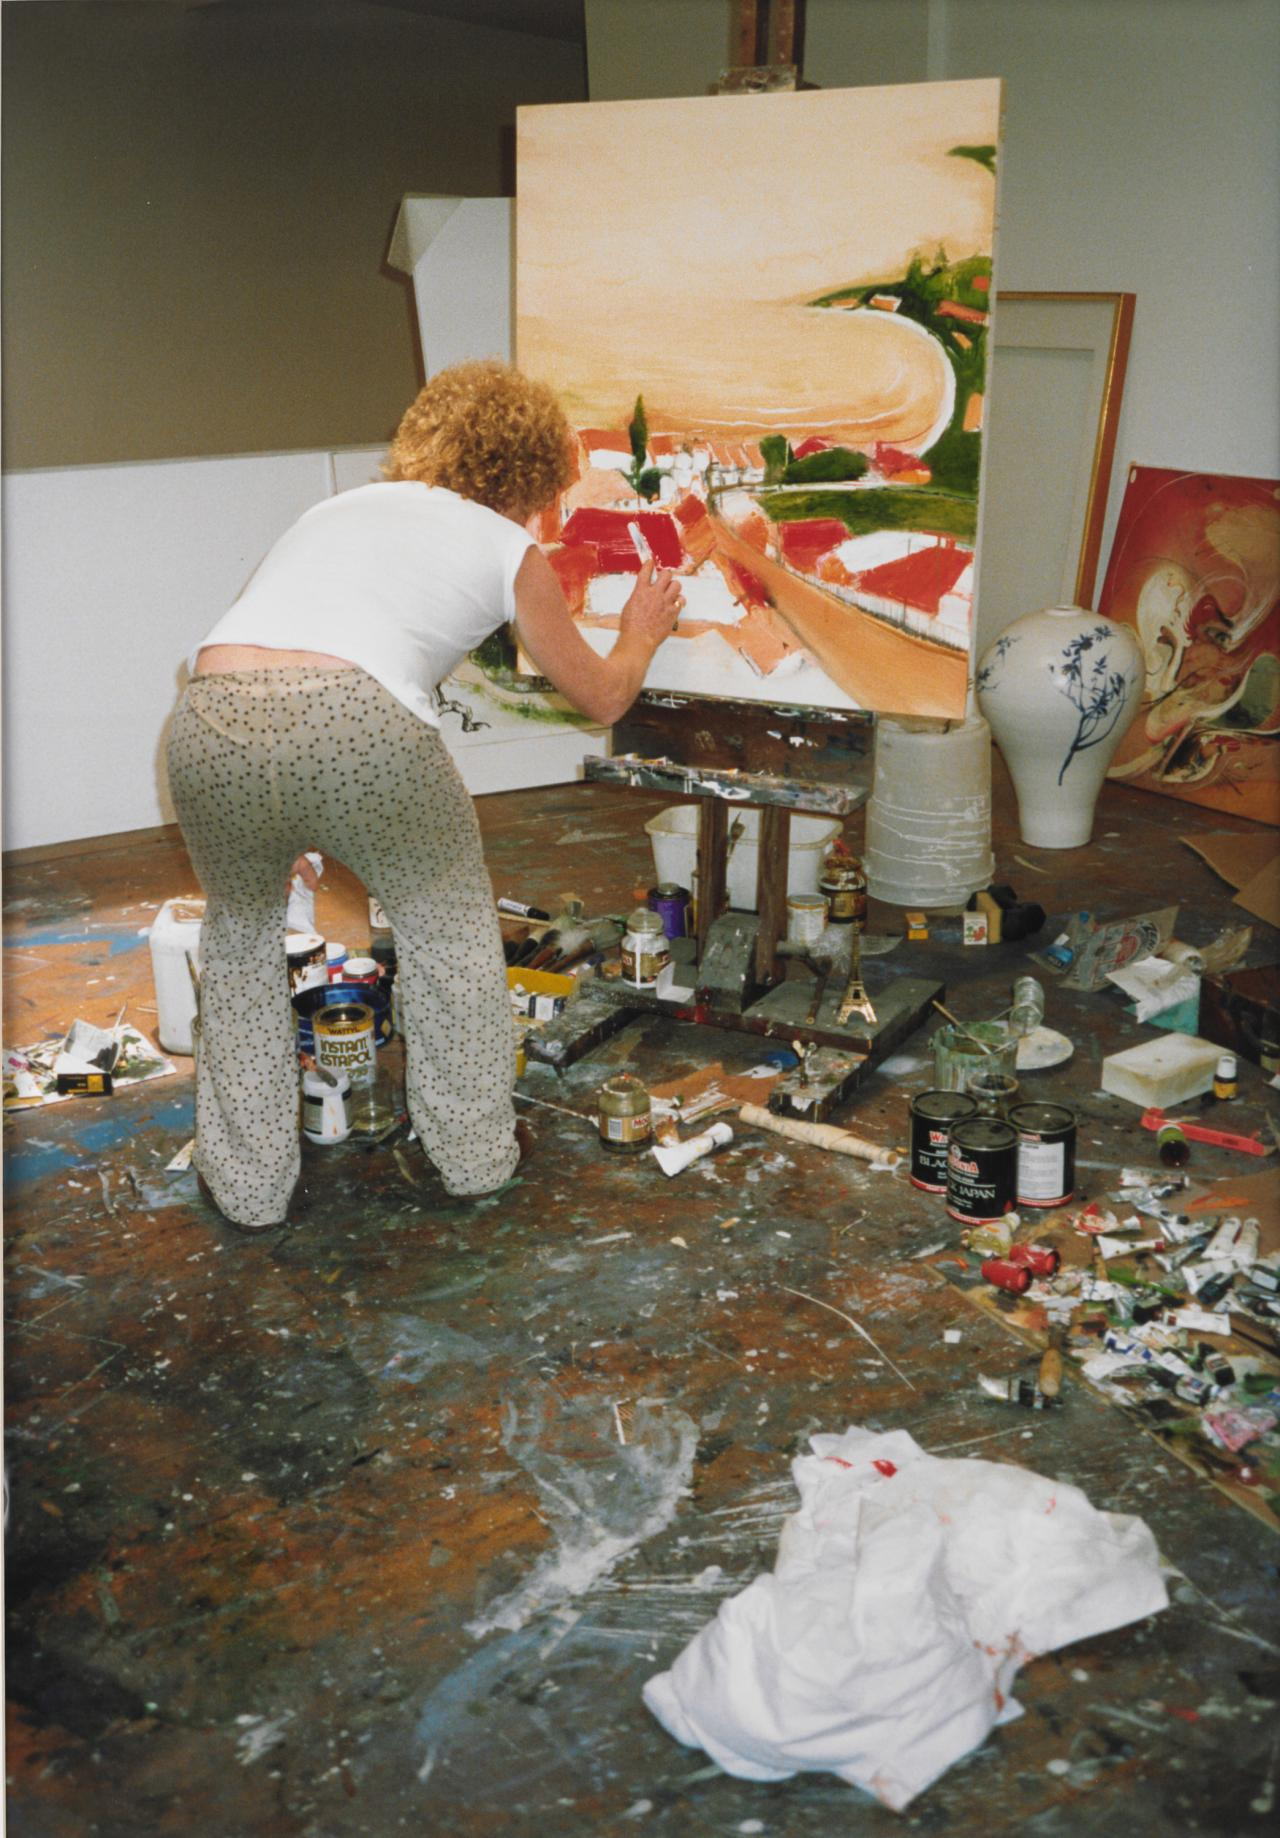 Brett Whiteley's studio